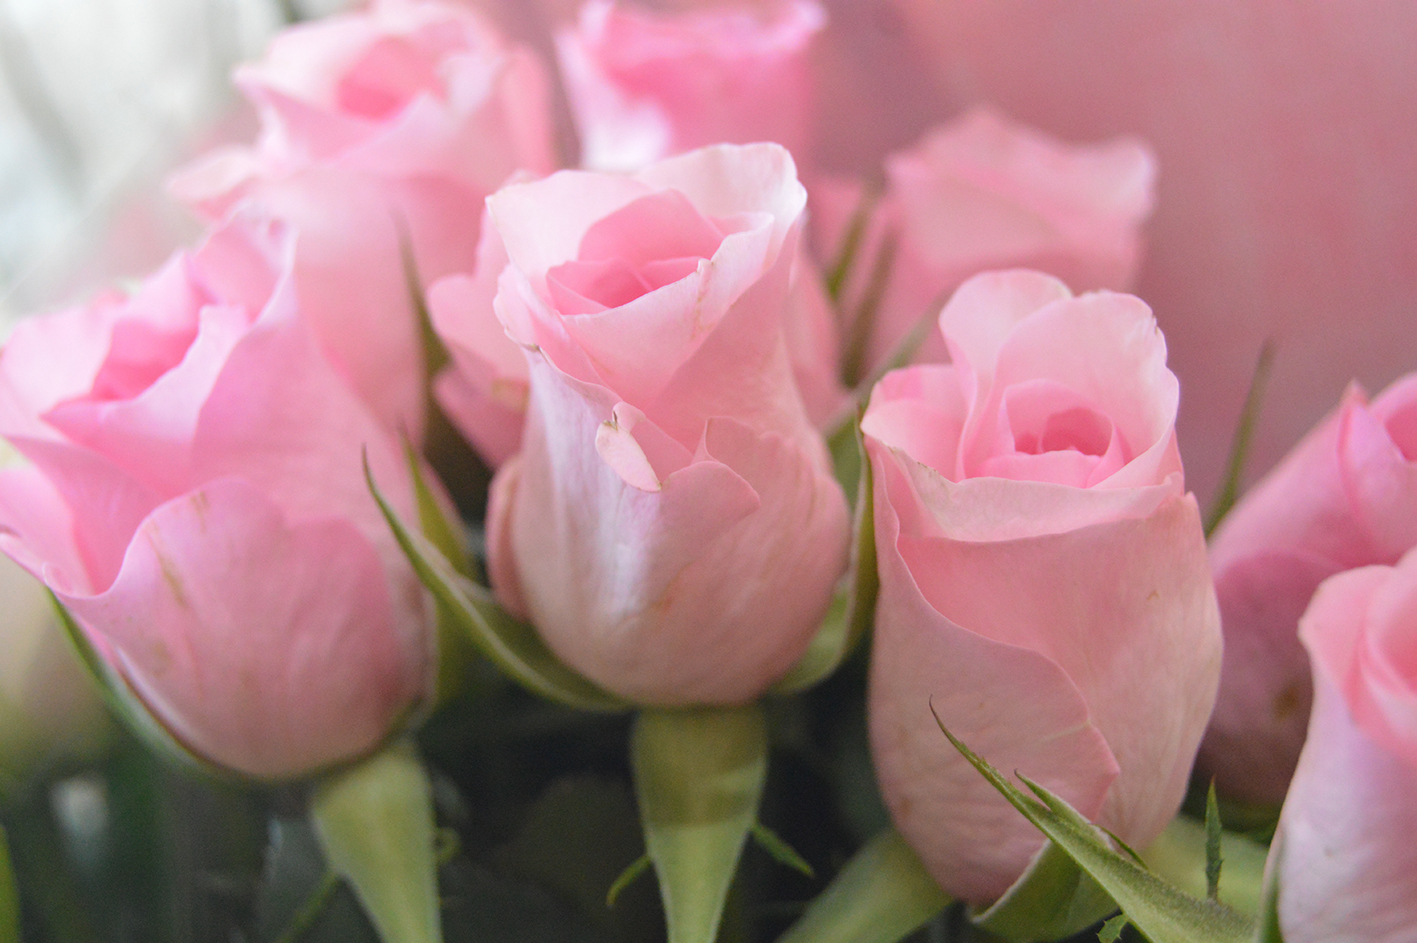 Free Stock Photo 16873 Free Photo Of Some Pink Roses Freeimageslive